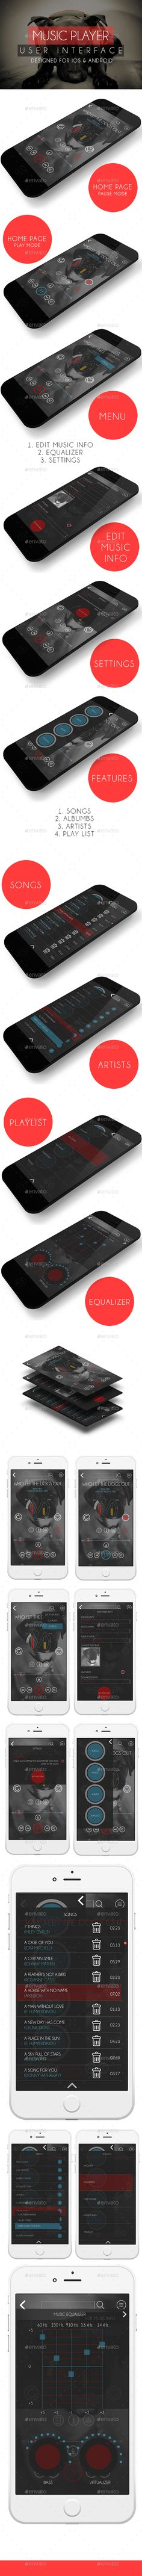 MUSIC PLAYER (USER INTERFACE) (User Interfaces)